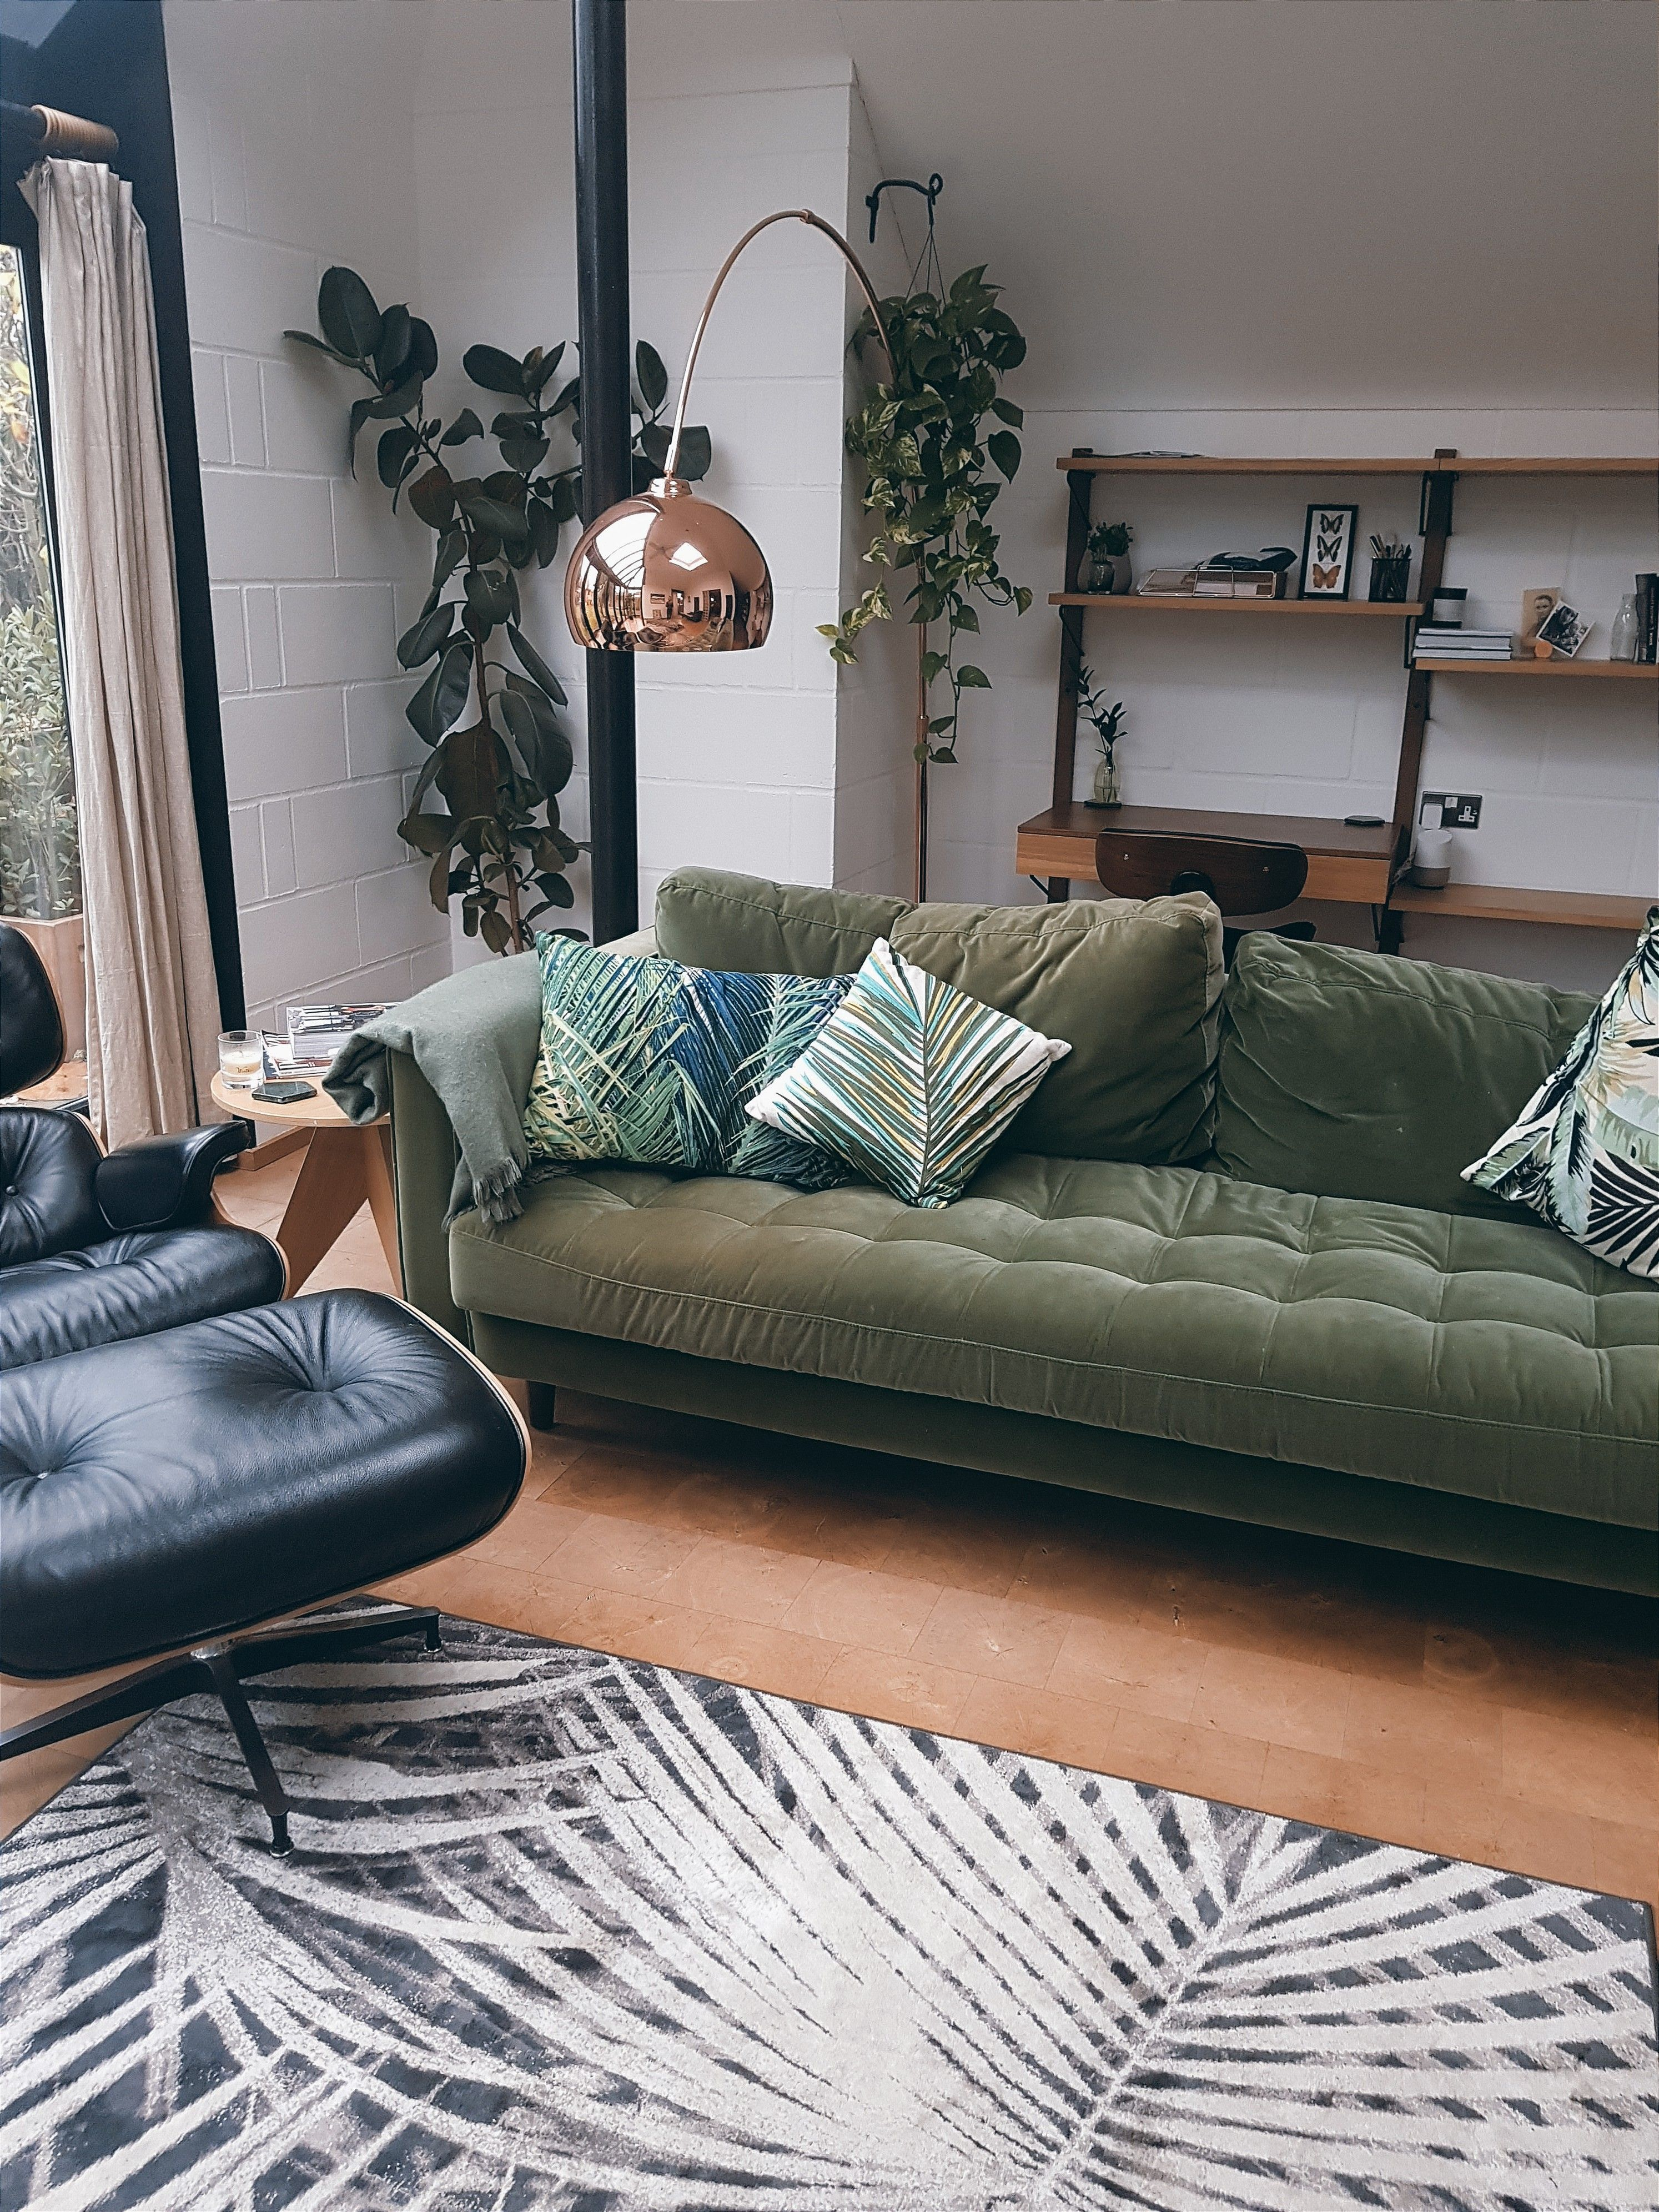 The Plants And Shelving In The Background Small Living Room Furniture Minimalist Living Room Open Living Room Design Home living room background